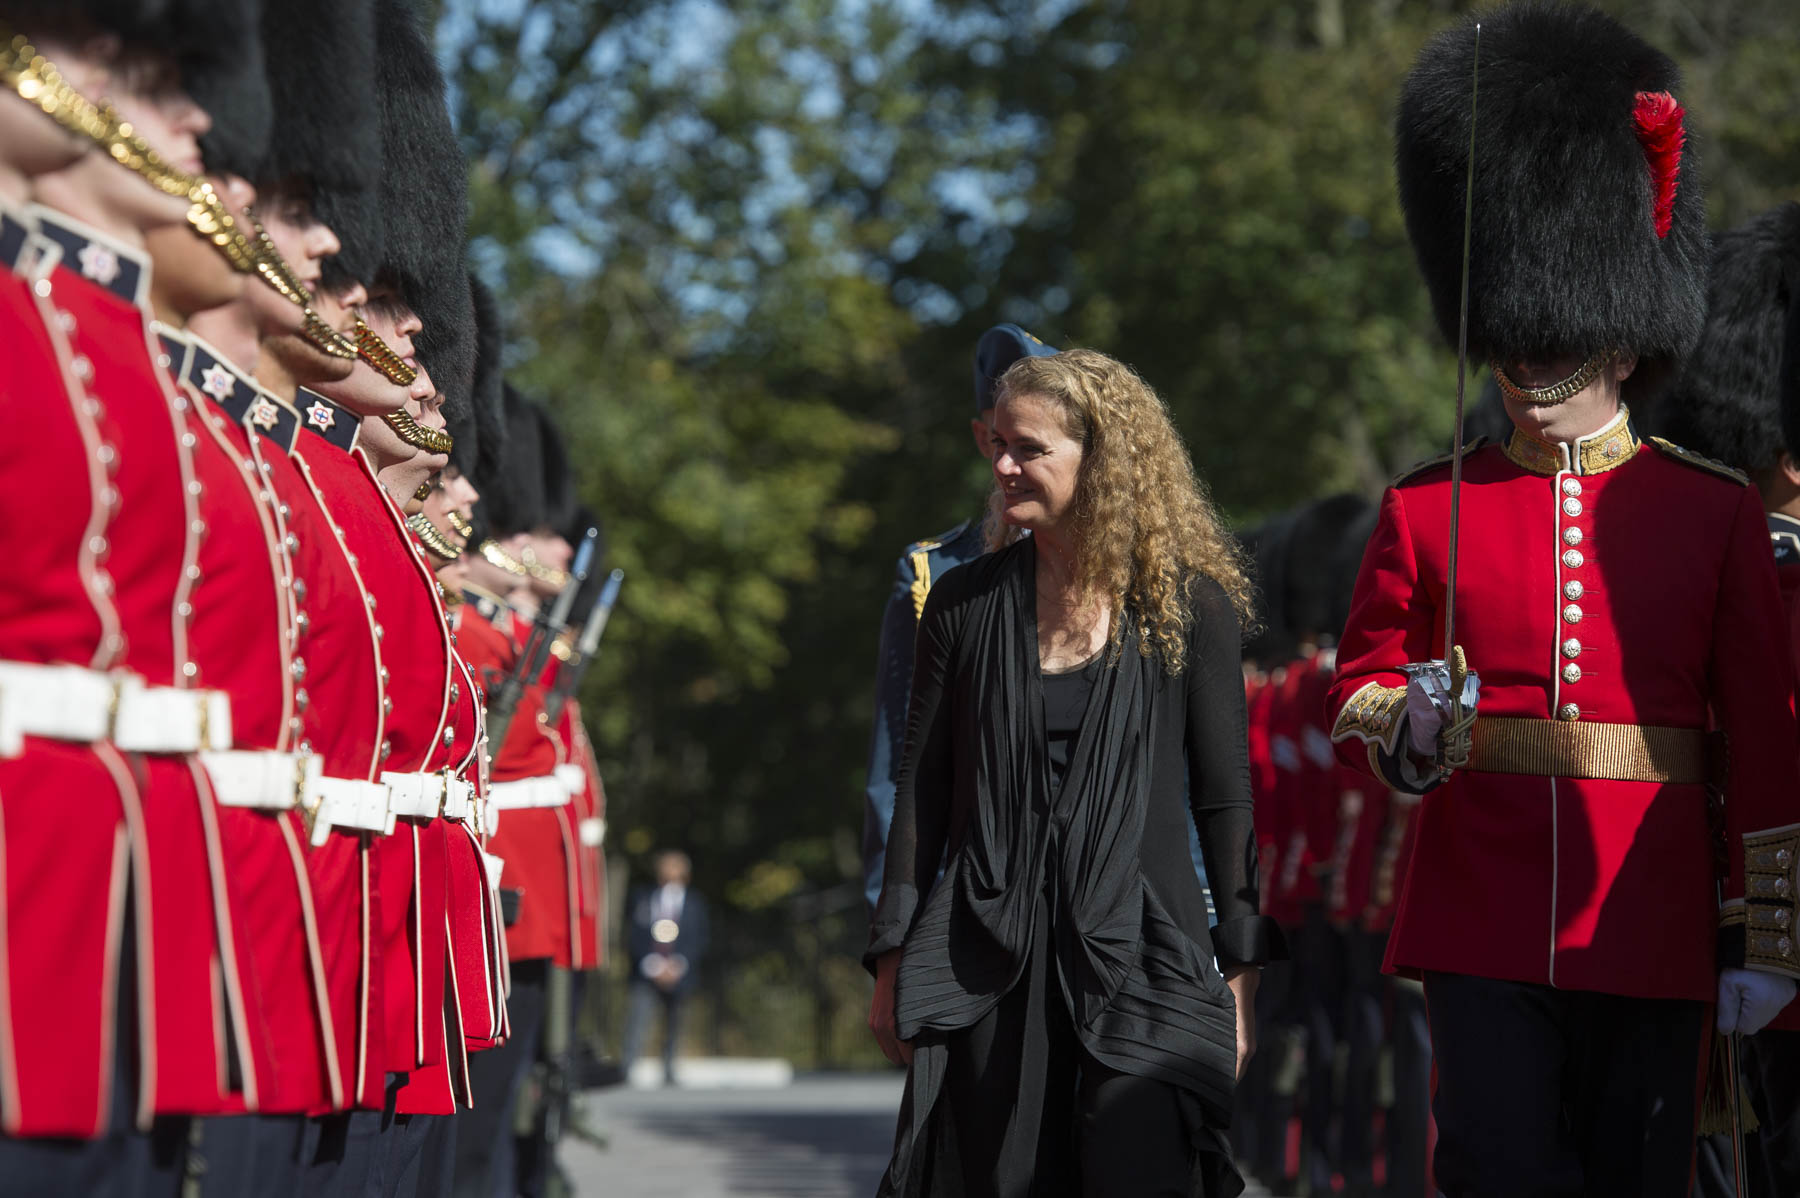 Her Excellency also inspected the guard of honour at Rideau Hall before making her way inside her new residence and workplace.